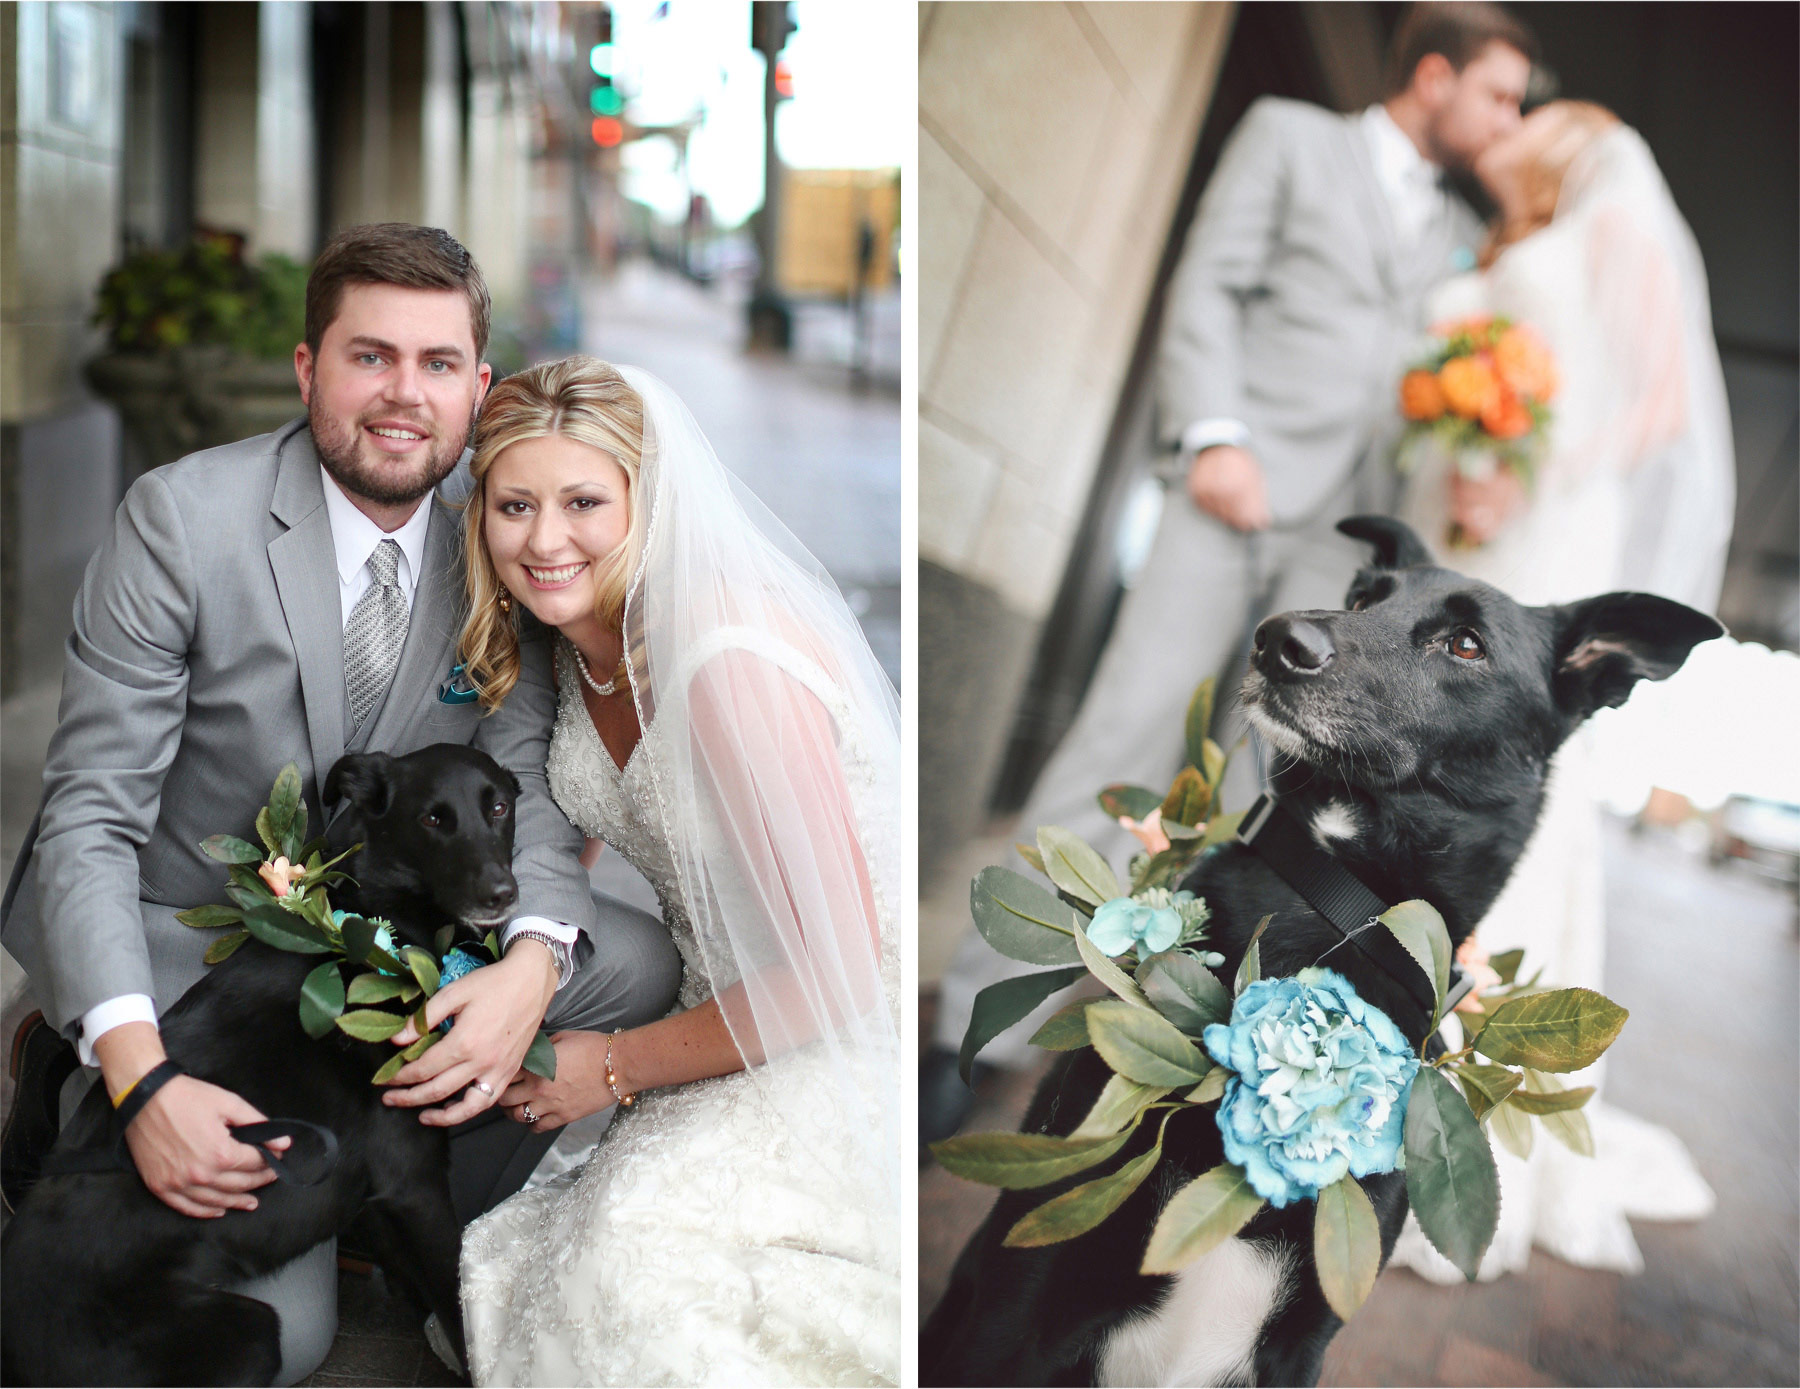 18-Duluth-Minnesota-Wedding-Photographer-by-Andrew-Vick-Photography-Summer-Bride-Groom-Dog-Flowers-Vintage-Katie-and-Andrew.jpg